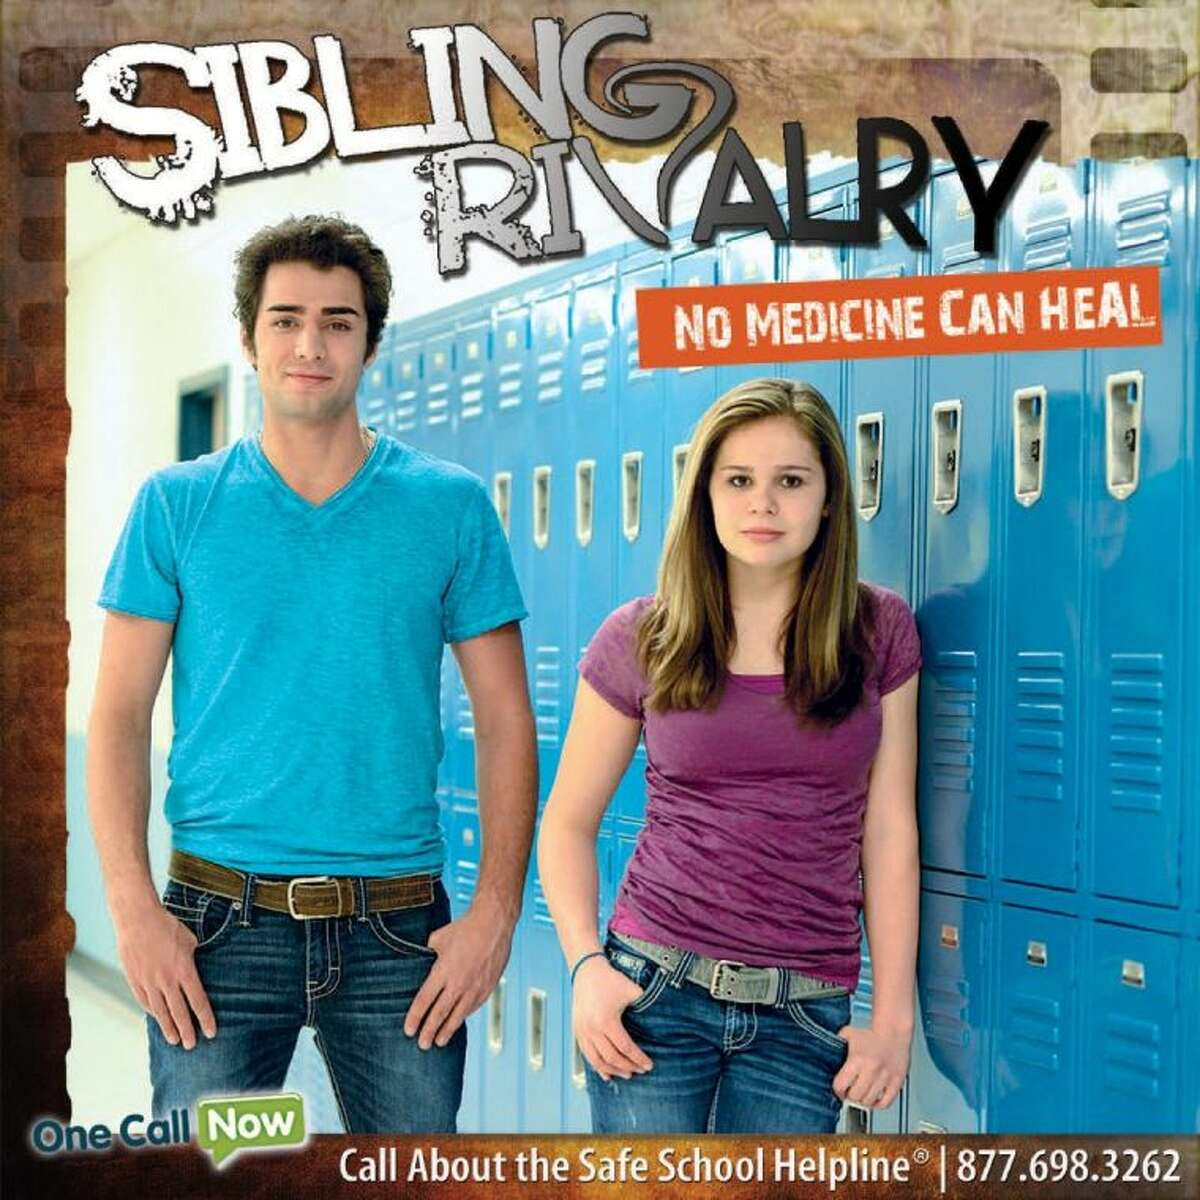 Sibling Rivalry, the teen country music duo made up of vocalist Olivia Butaud, 14, and older brother/lead musician, 19-year-old Mitchell Butaud, is pleased to announce today's digital release of